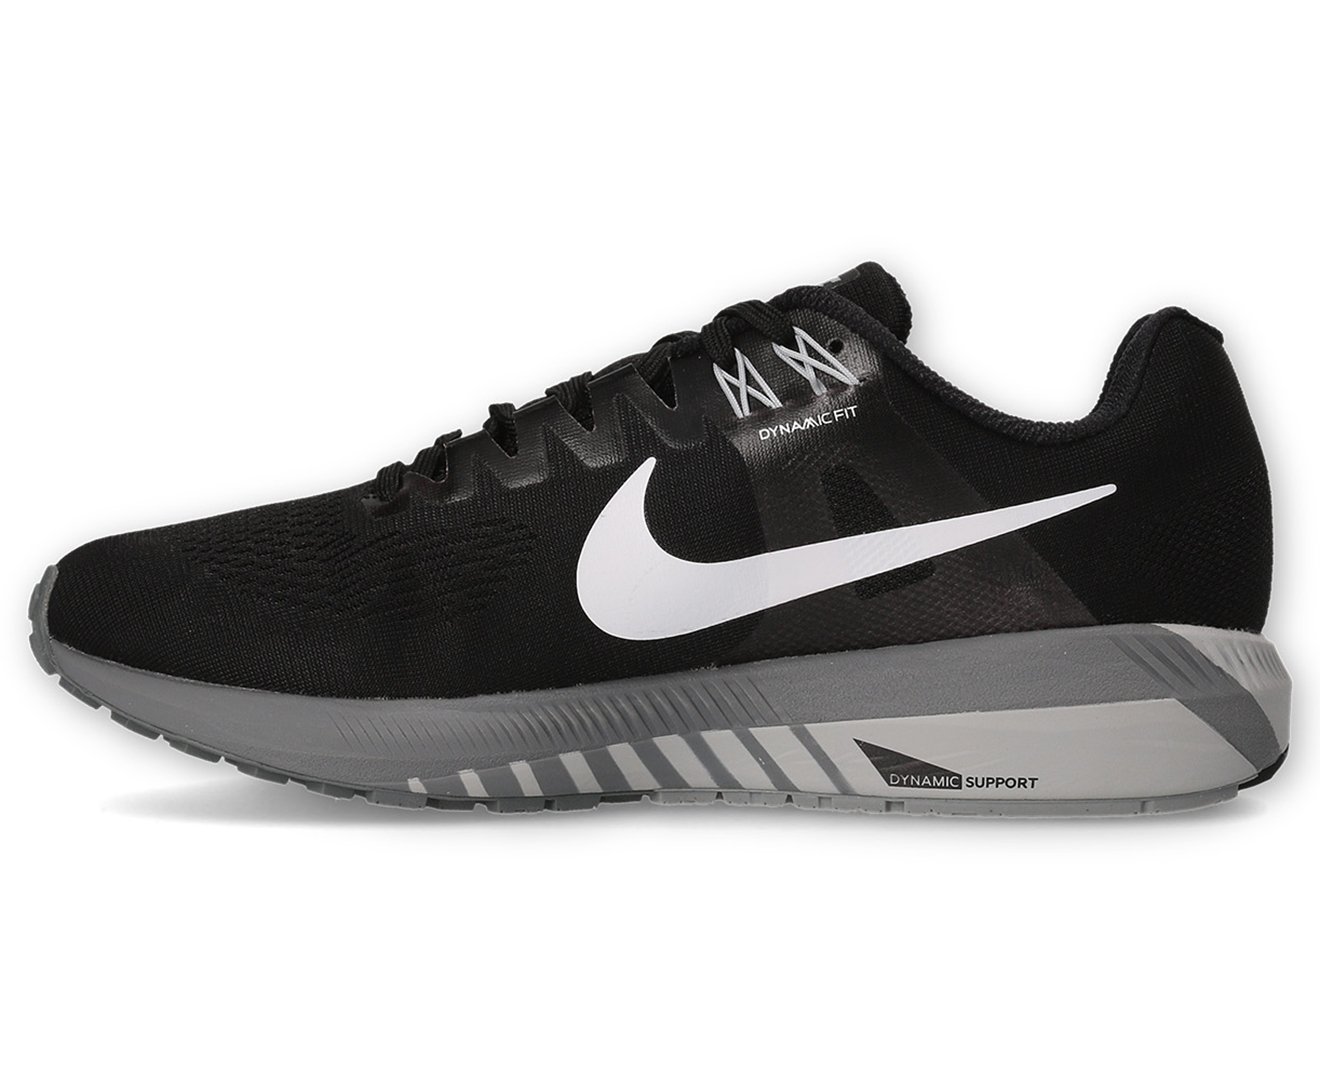 19d5804a832f1 Nike Men s Air Zoom Structure 21 Shoe - Black White-Wolf Grey ...